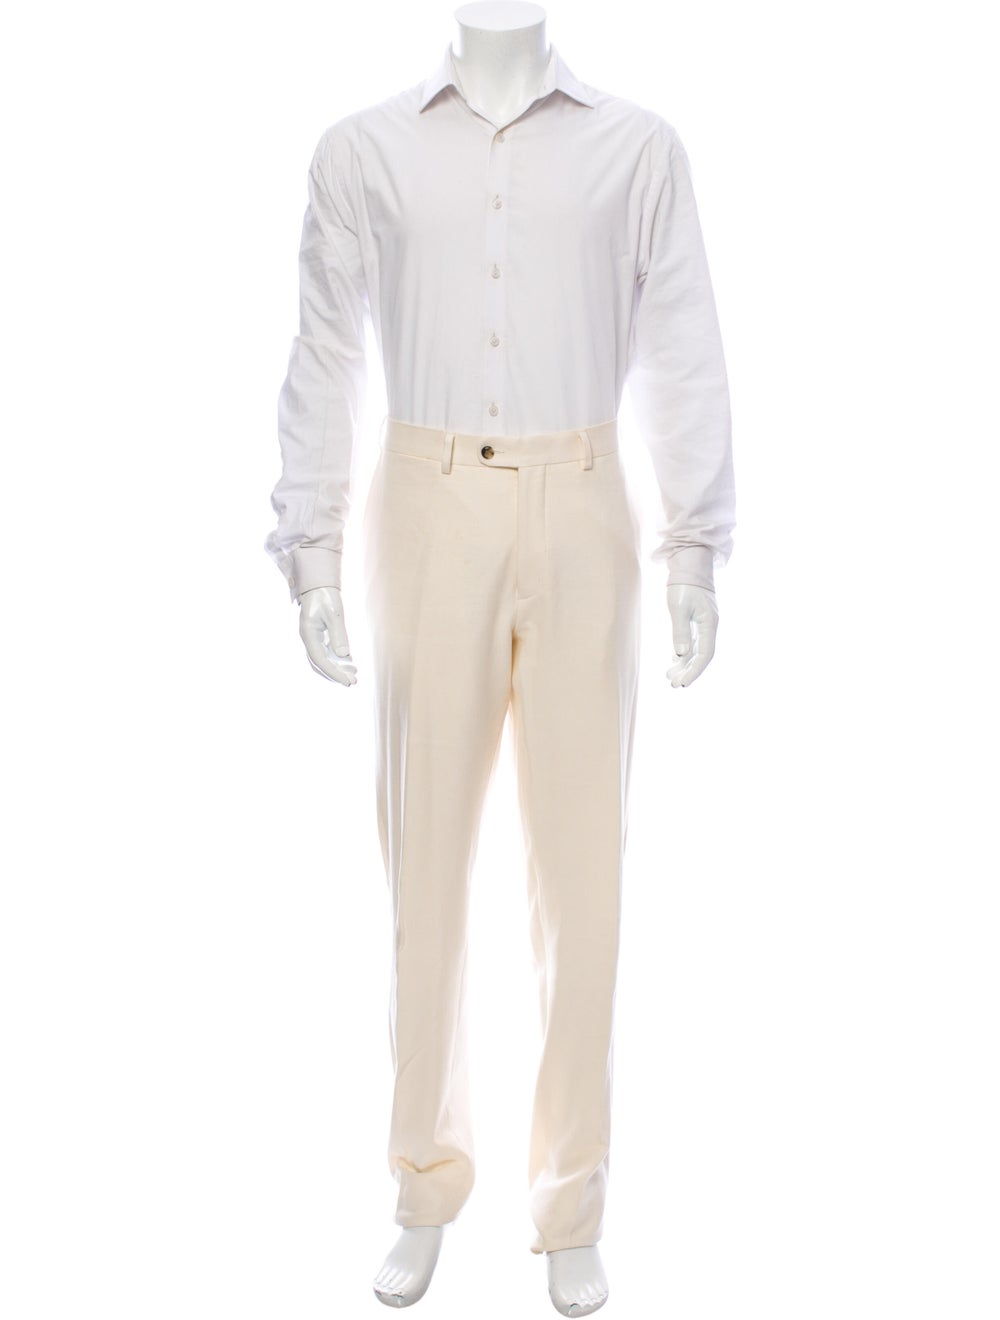 Suitsupply Two-Piece Suit - image 4